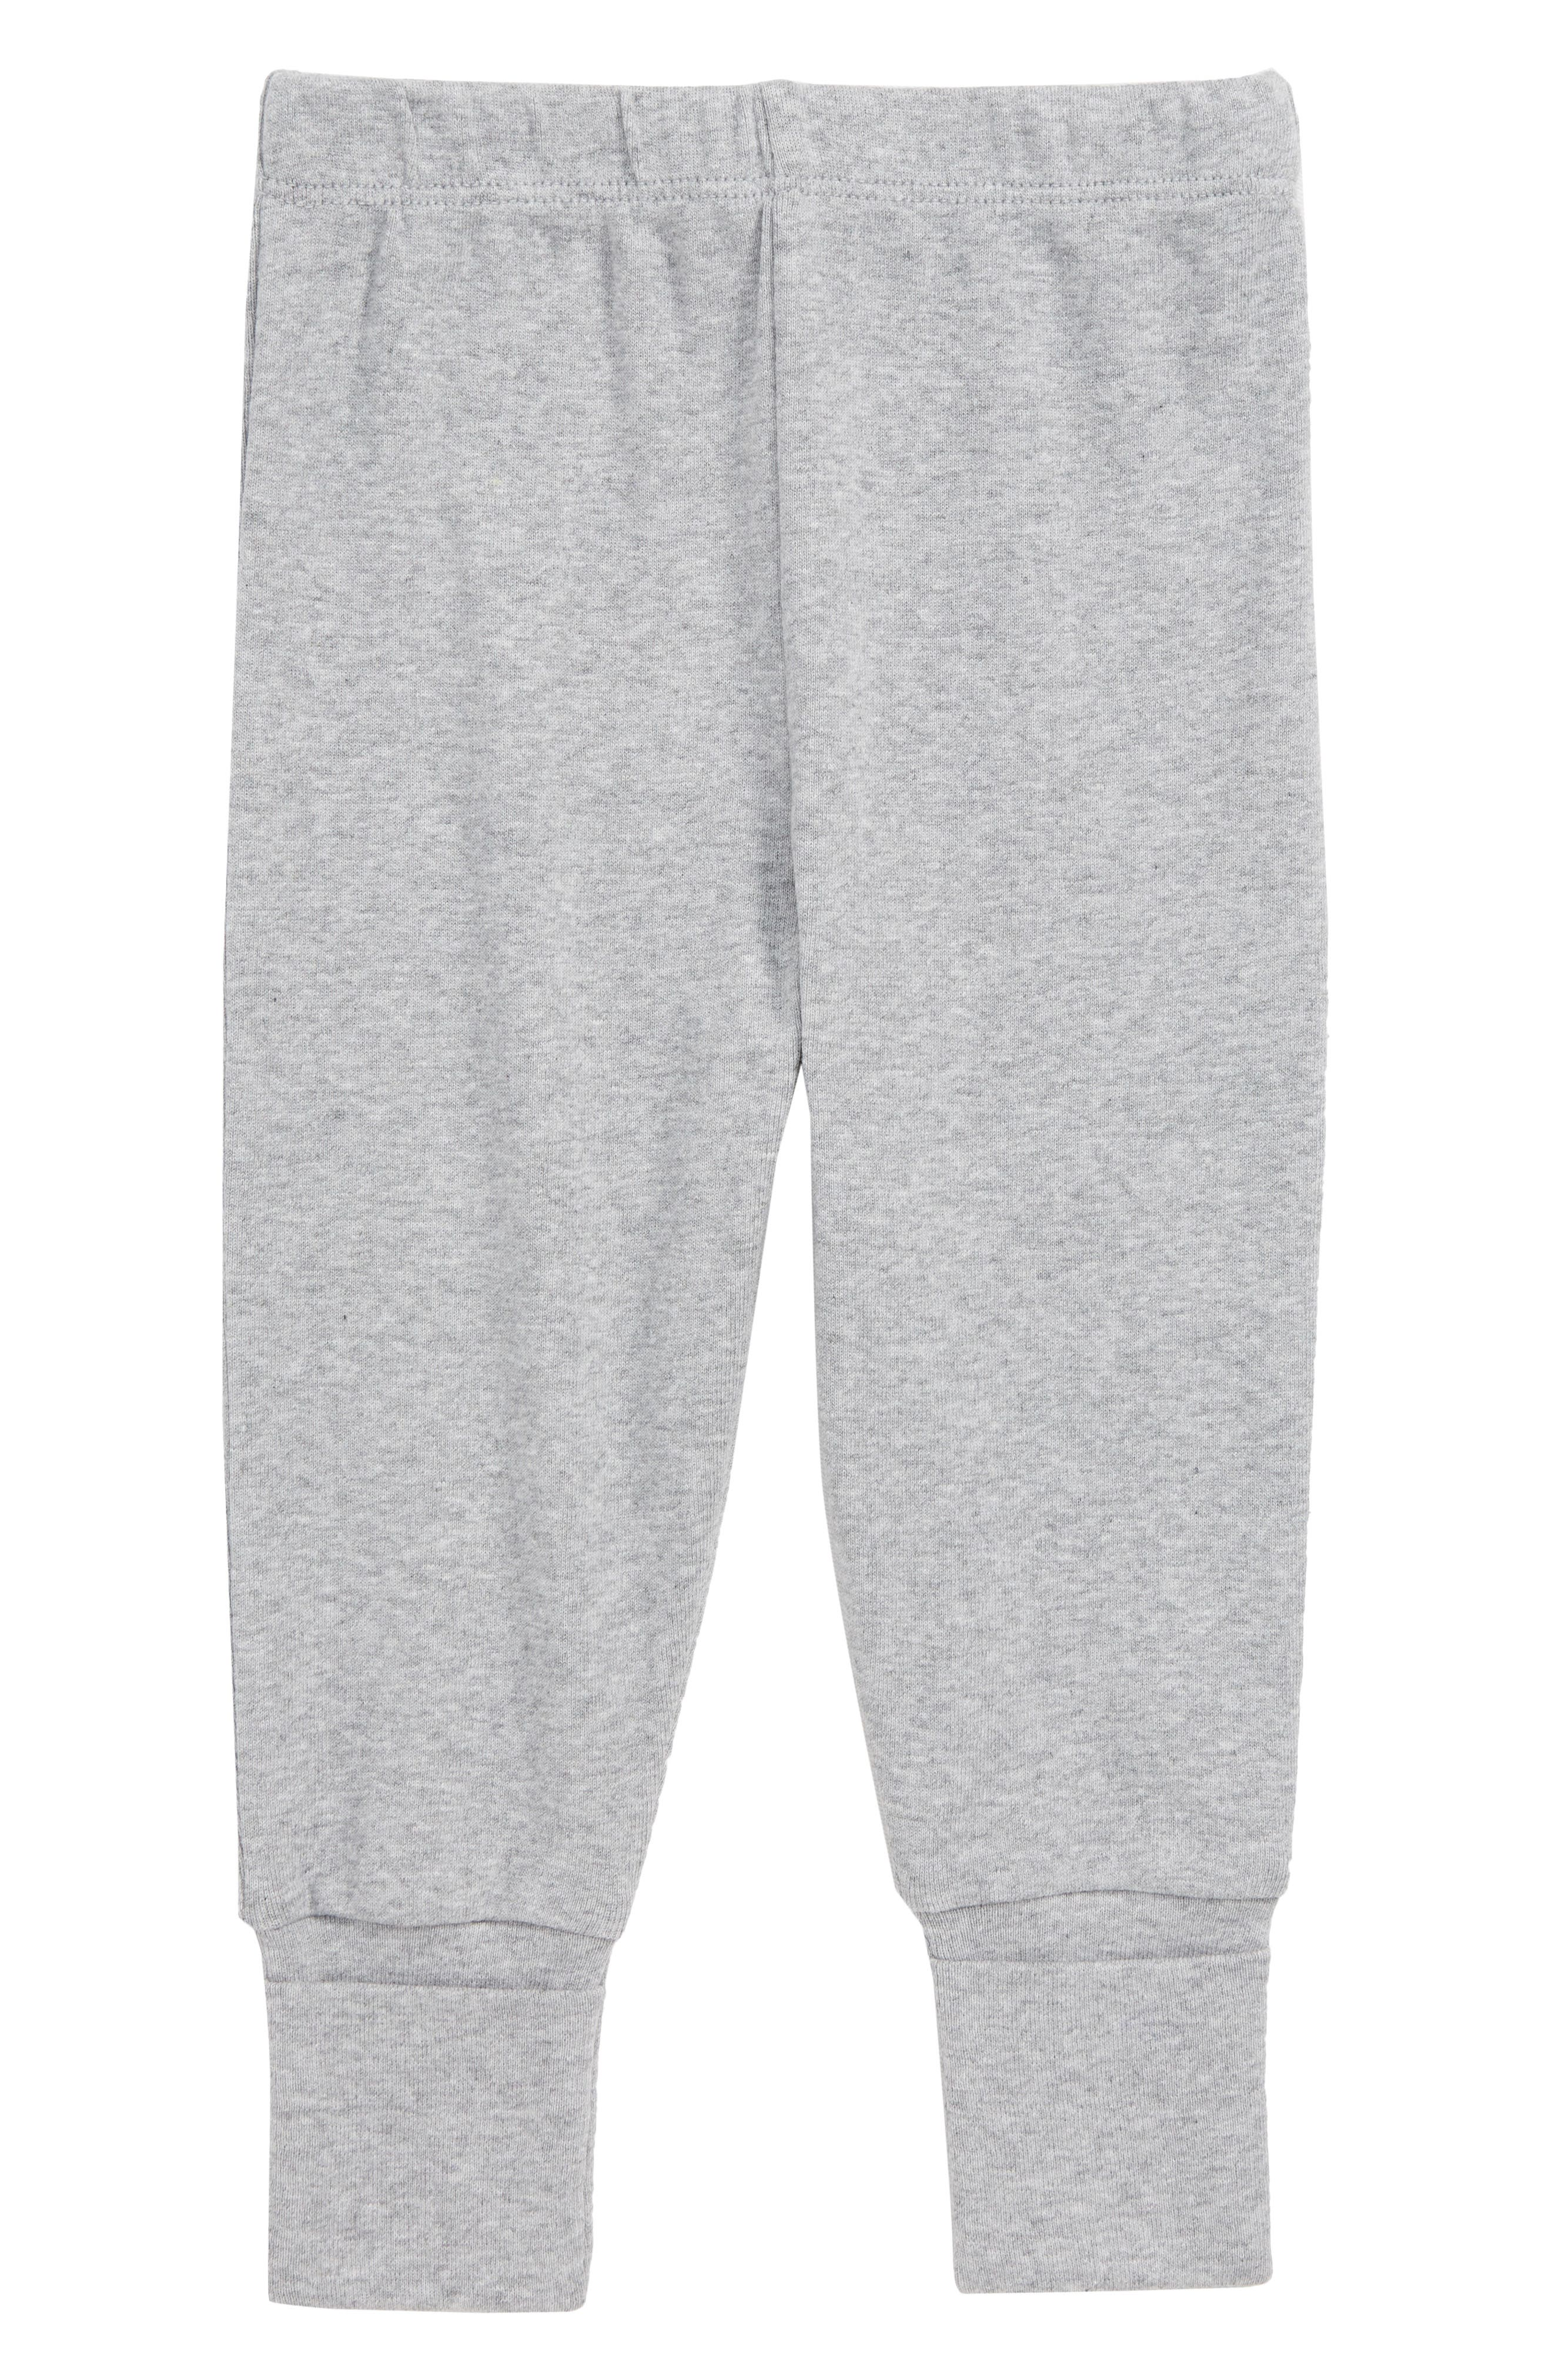 Hello Baby Organic Cotton Sweatpants,                             Main thumbnail 1, color,                             HEATHER GREY